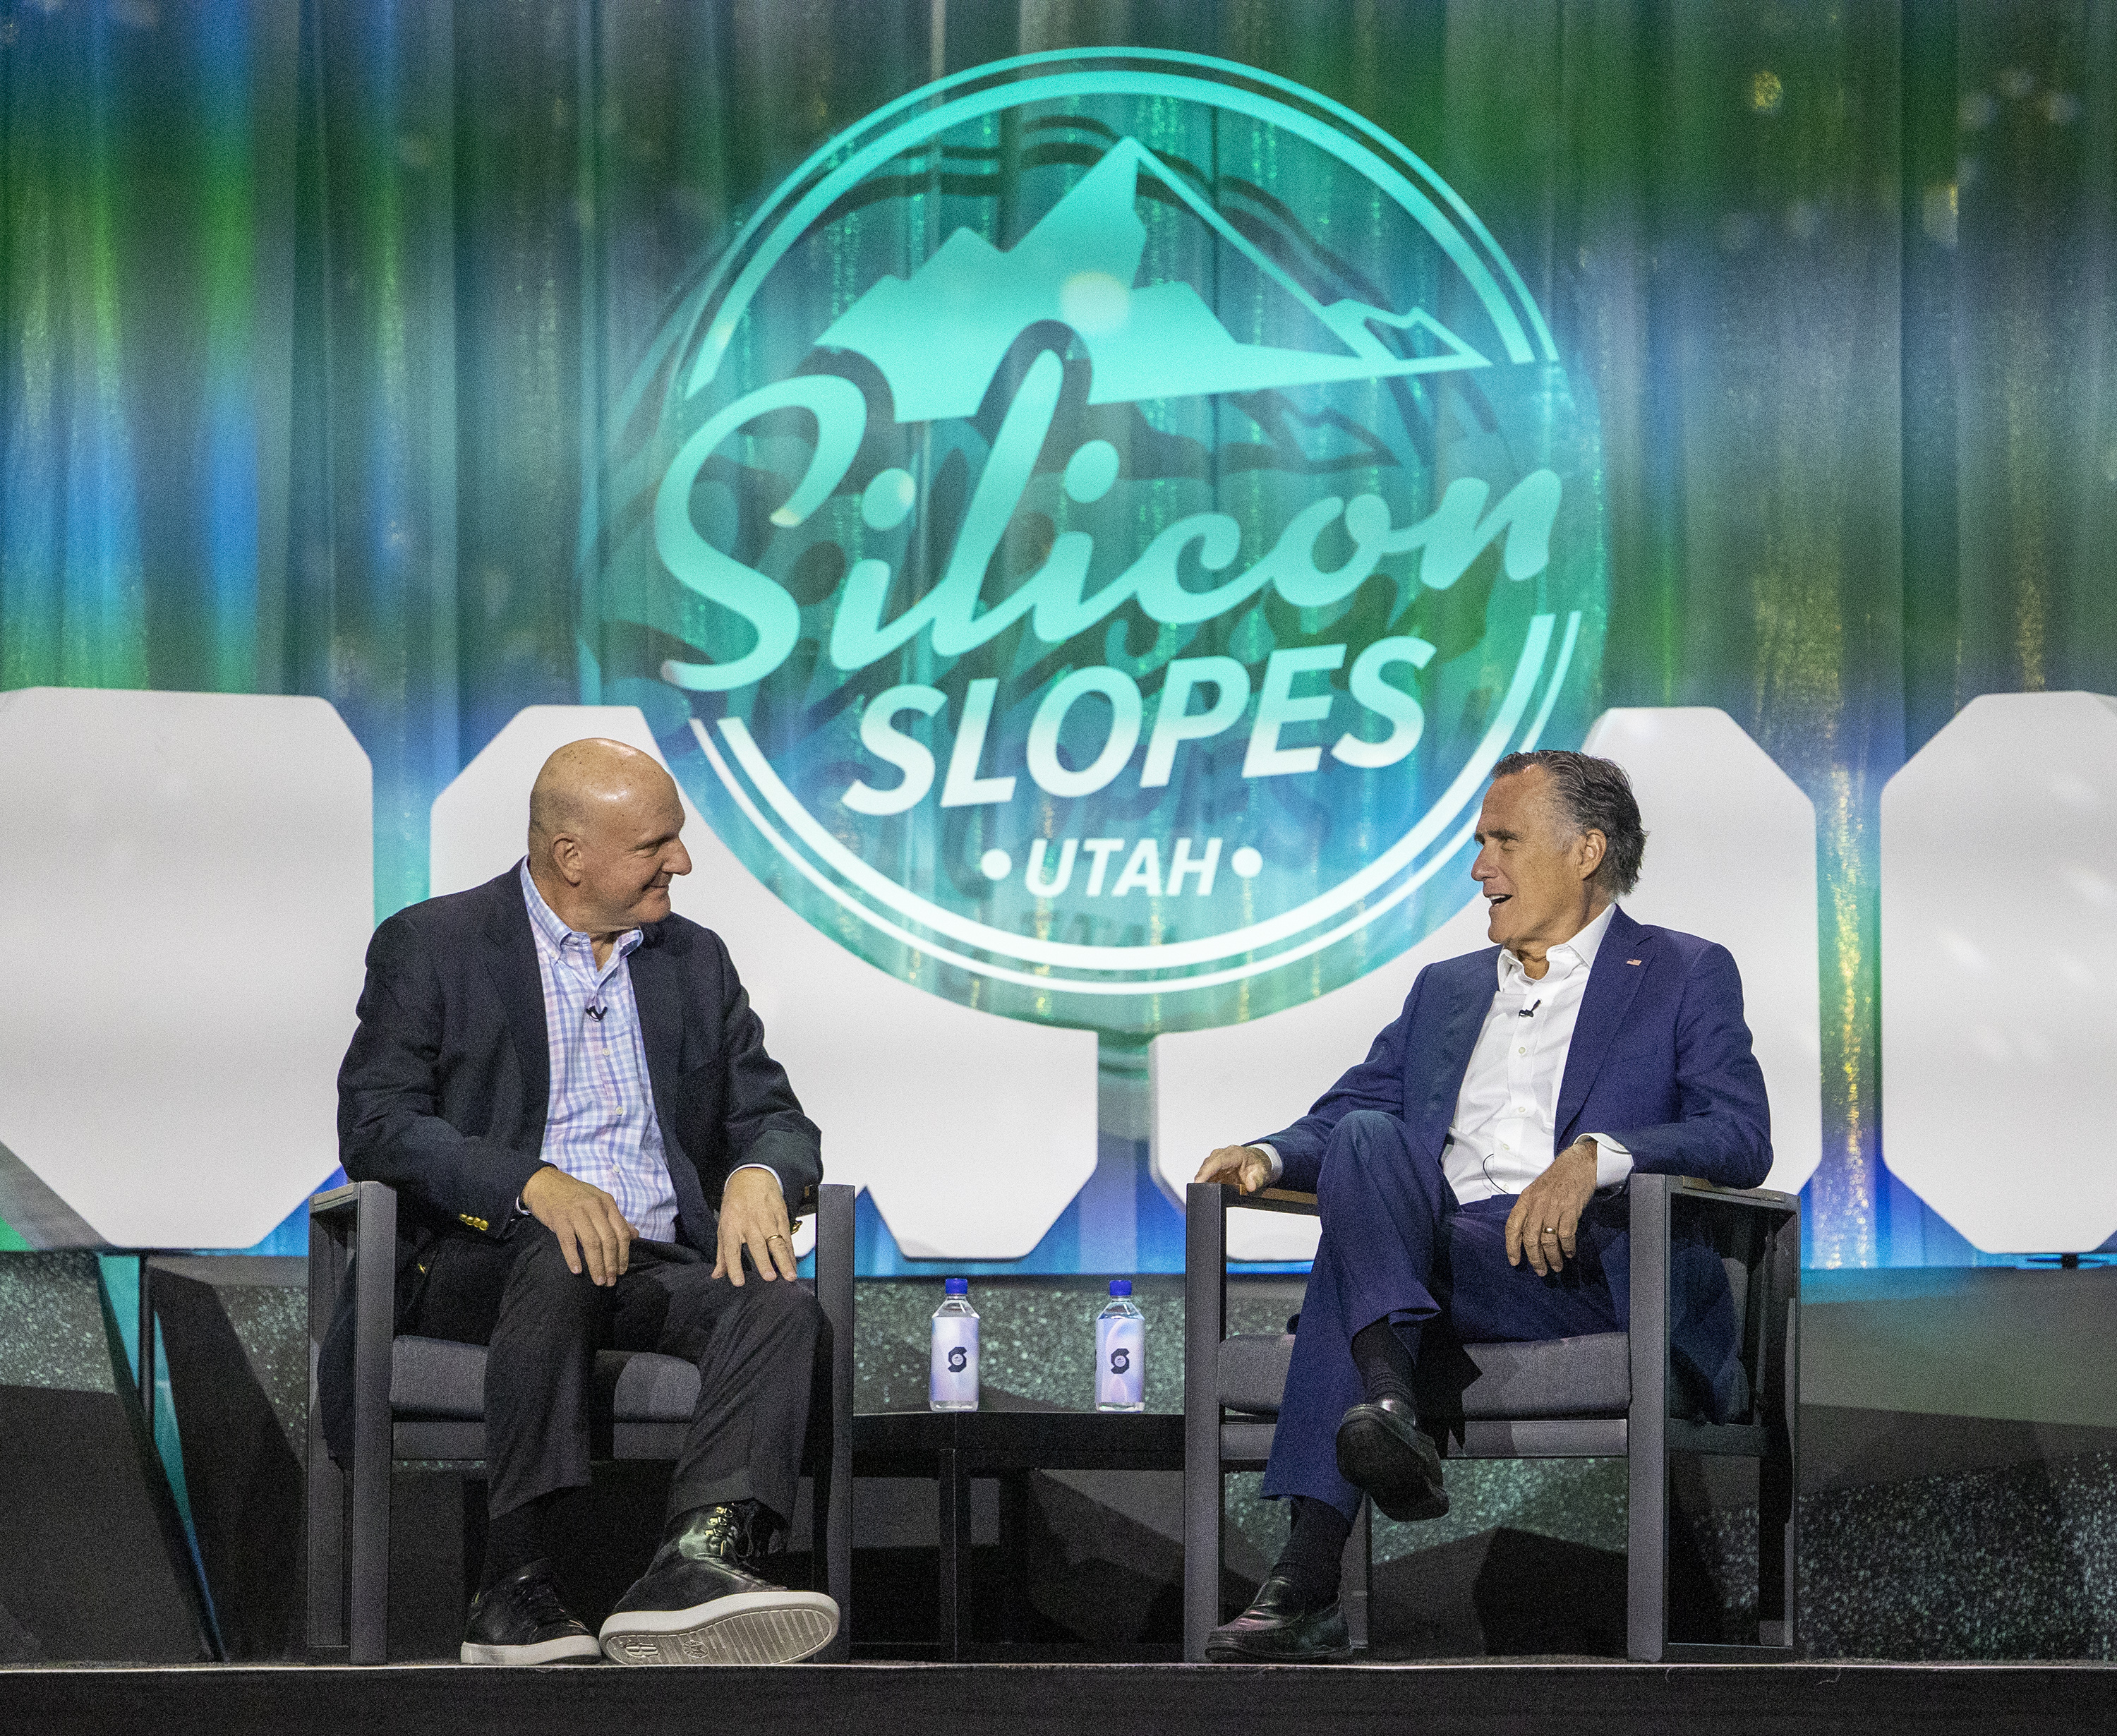 Steve Ballmer, LA Clippers owner and former Microsoft CEO, talks with Utah Sen. Mitt Romney at the Silicon Slopes Summit.